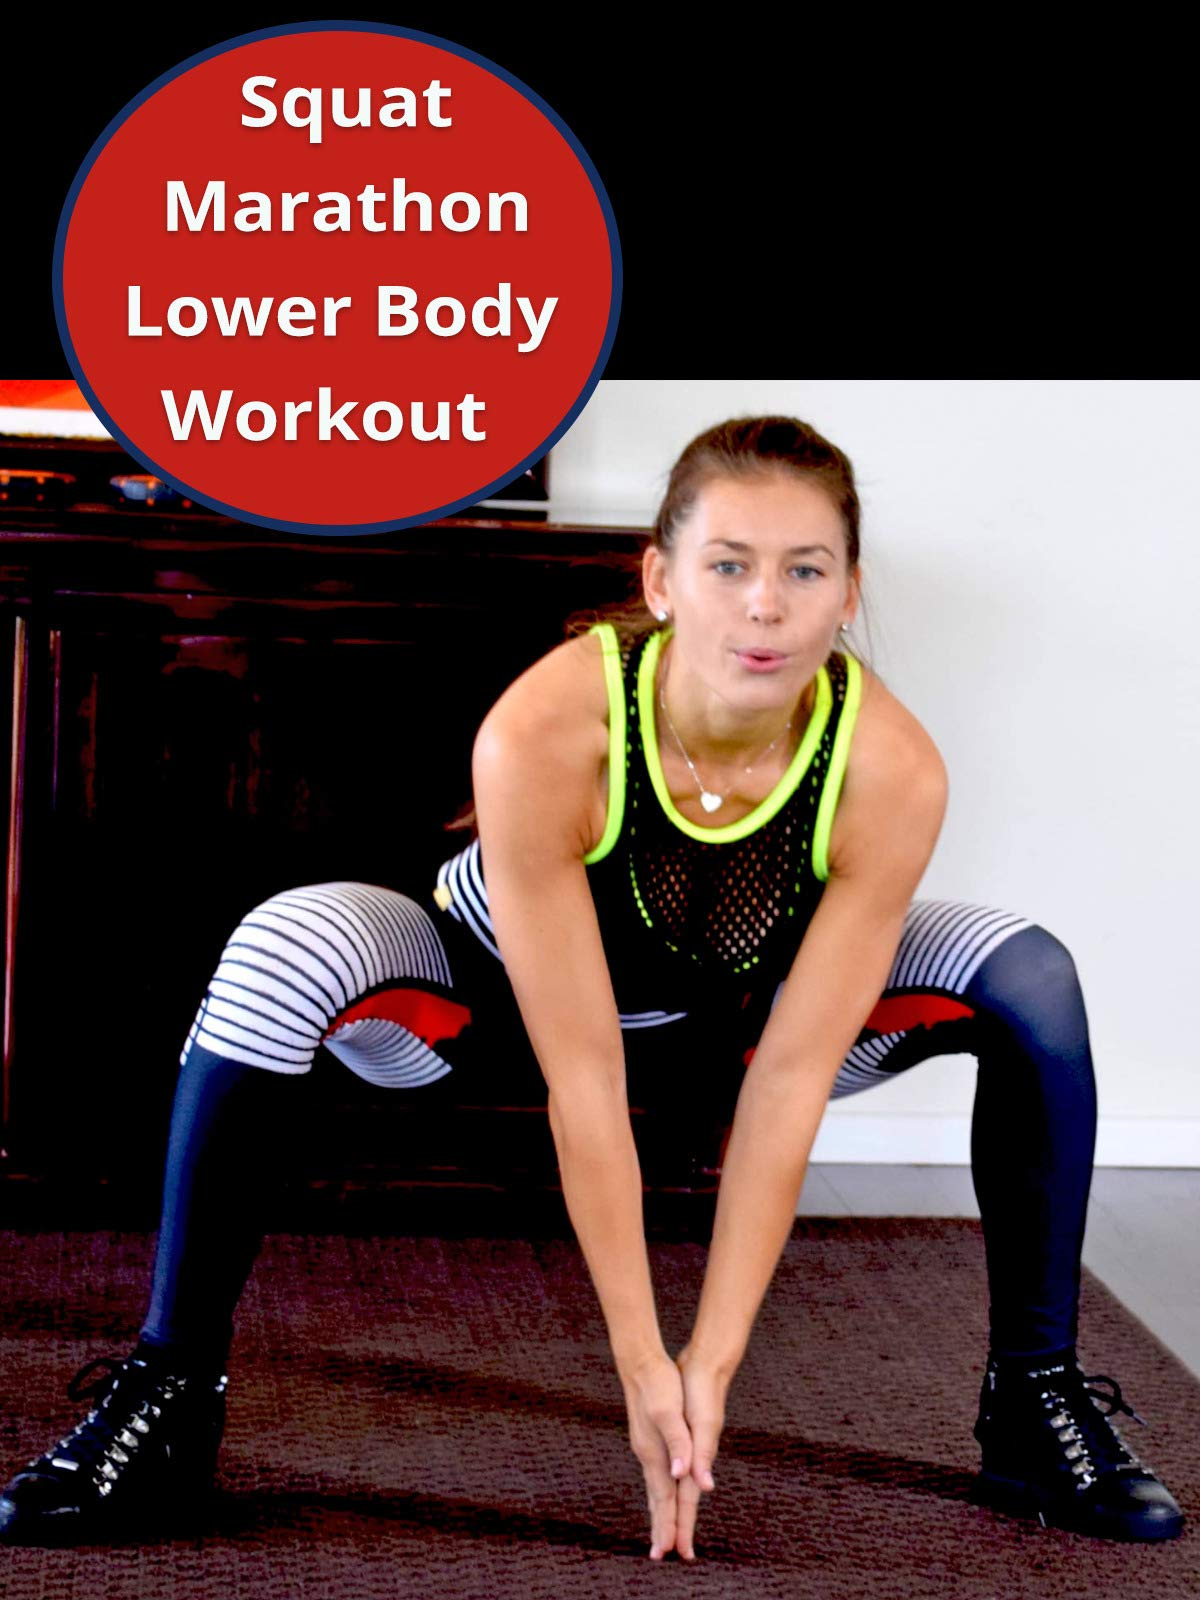 Squat Marathon Lower Body Workout